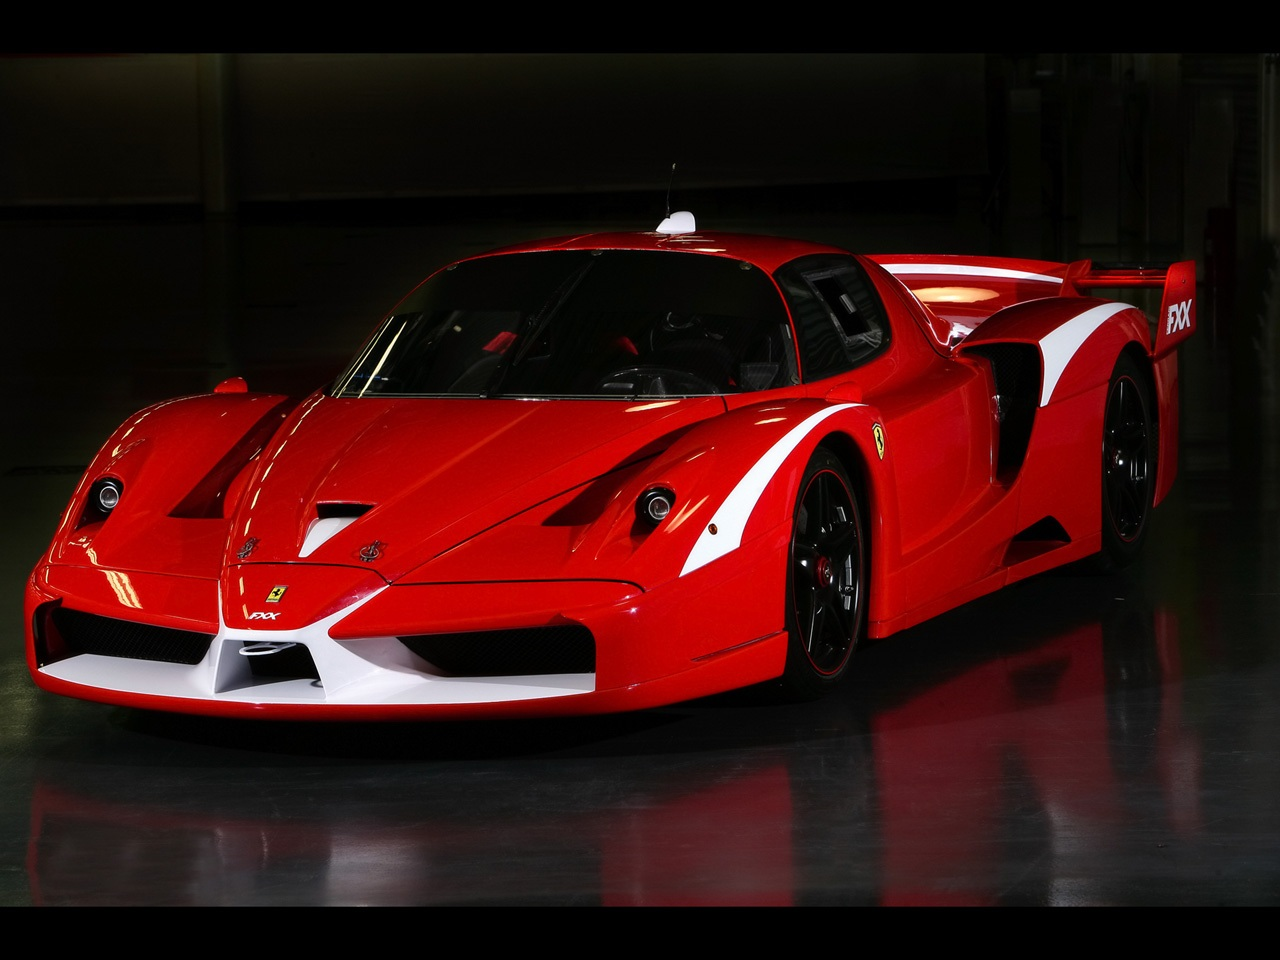 red ferrari enzo wallpaper area wallpaper area hd wallpapers download. Black Bedroom Furniture Sets. Home Design Ideas